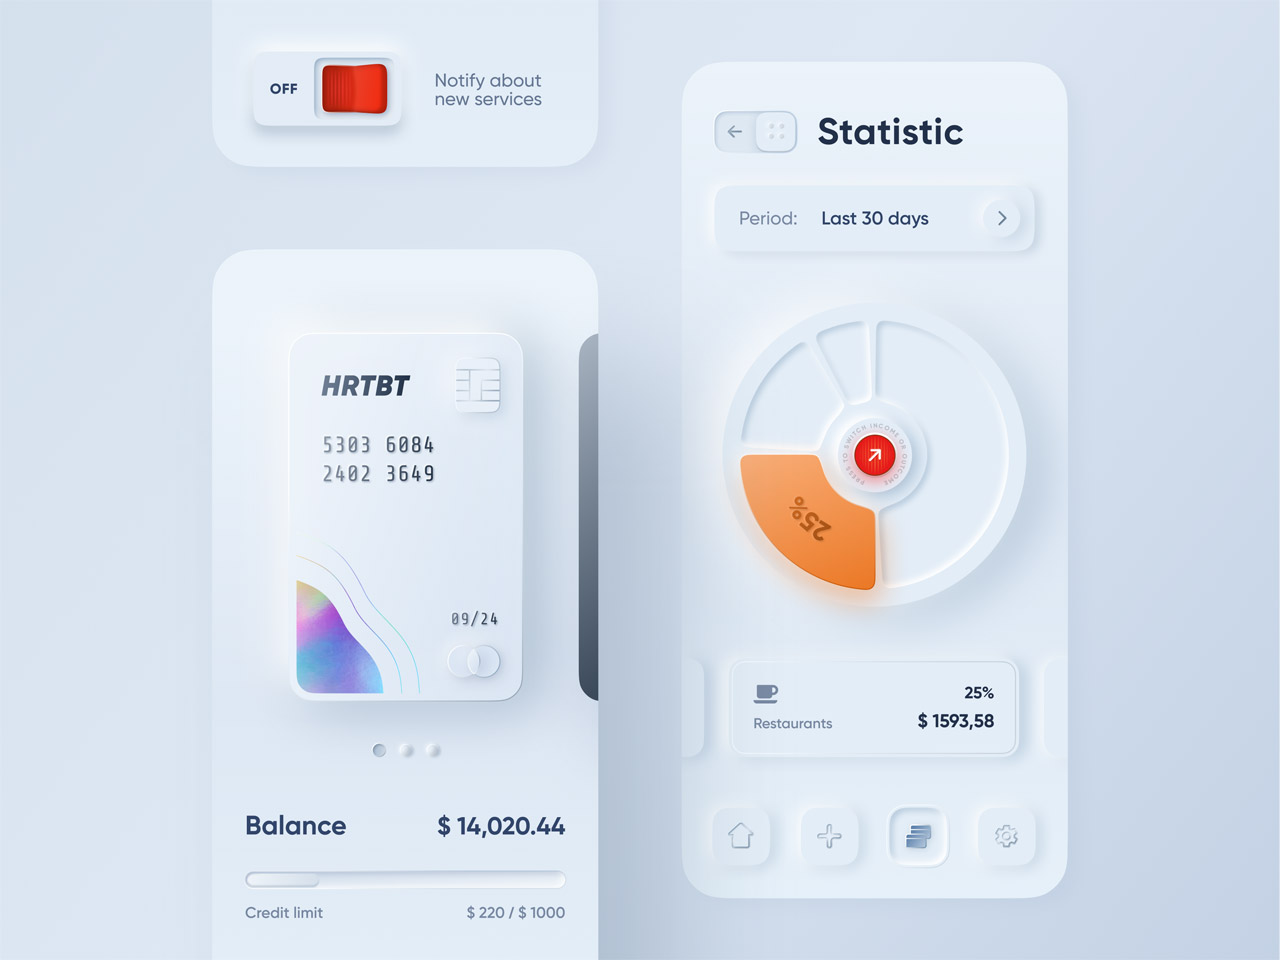 UI Designs for Mobile Apps by Alexander Plyuto